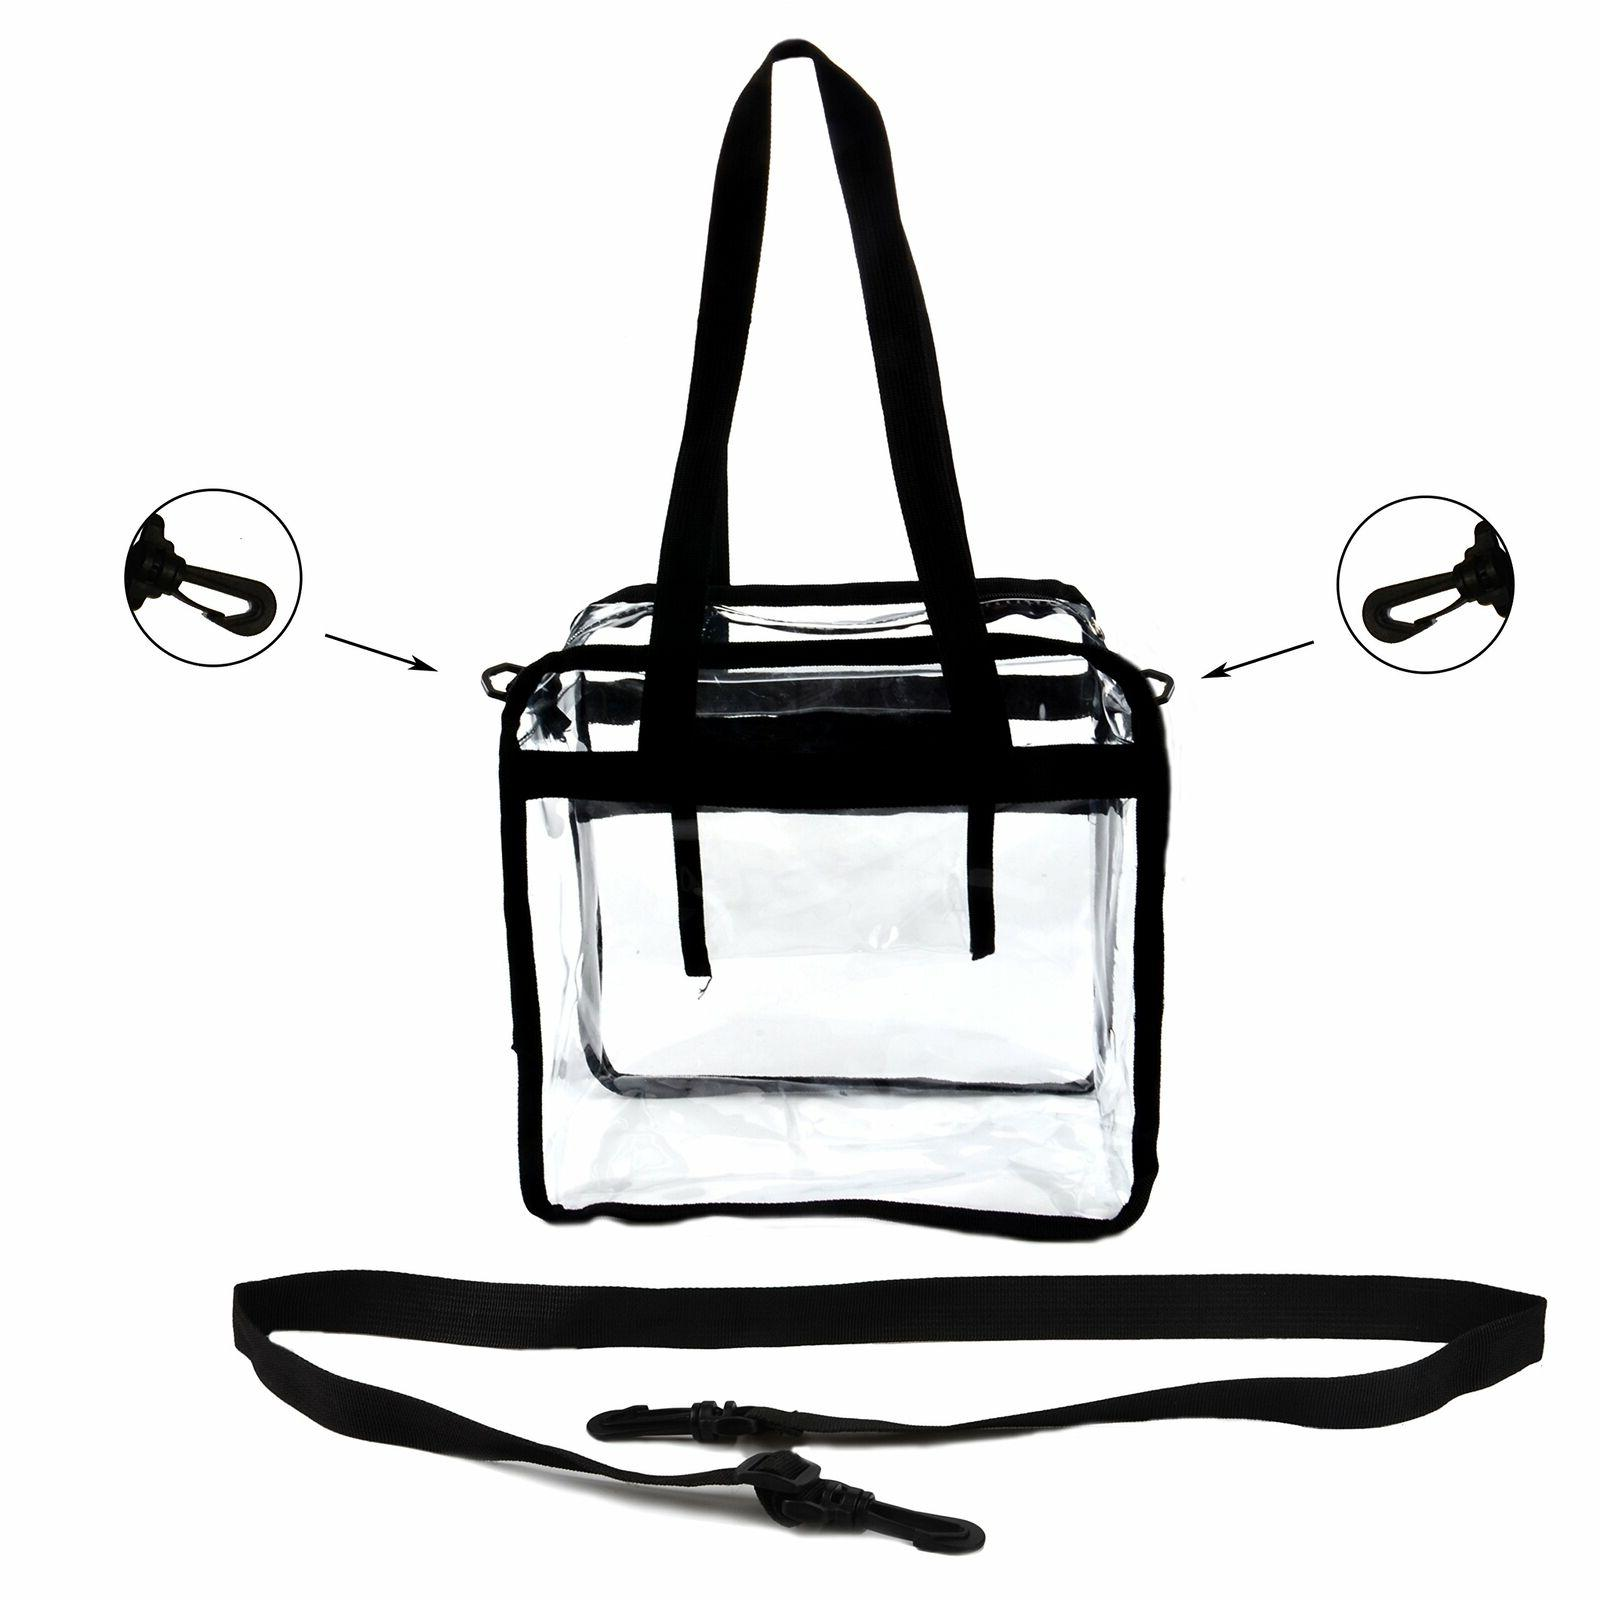 Clear Heavy Duty Tote For Lunch School Gym Holds Up to